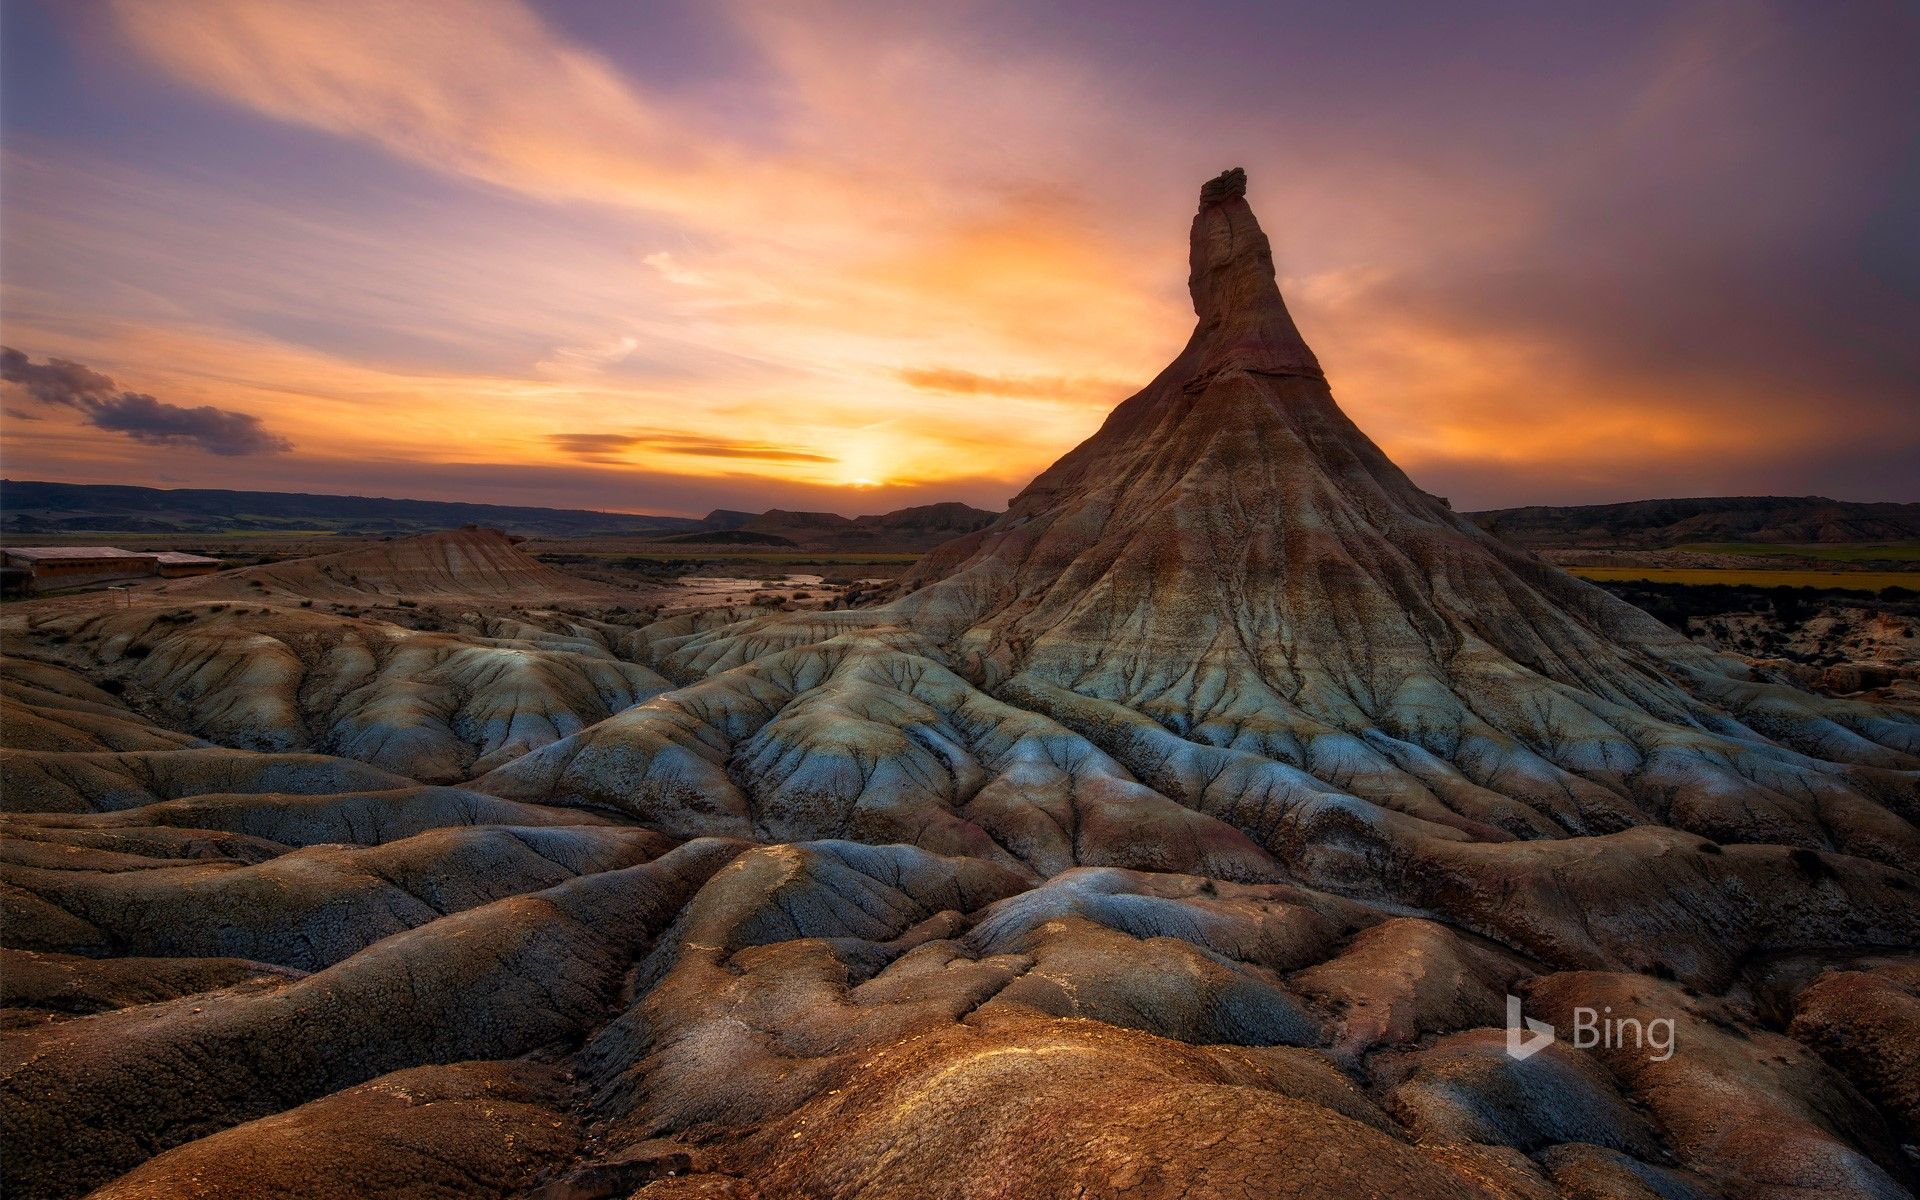 Colorful sunset over Castildetierra, in the Natural Park of Bardenas Reales, Navarre, Spain